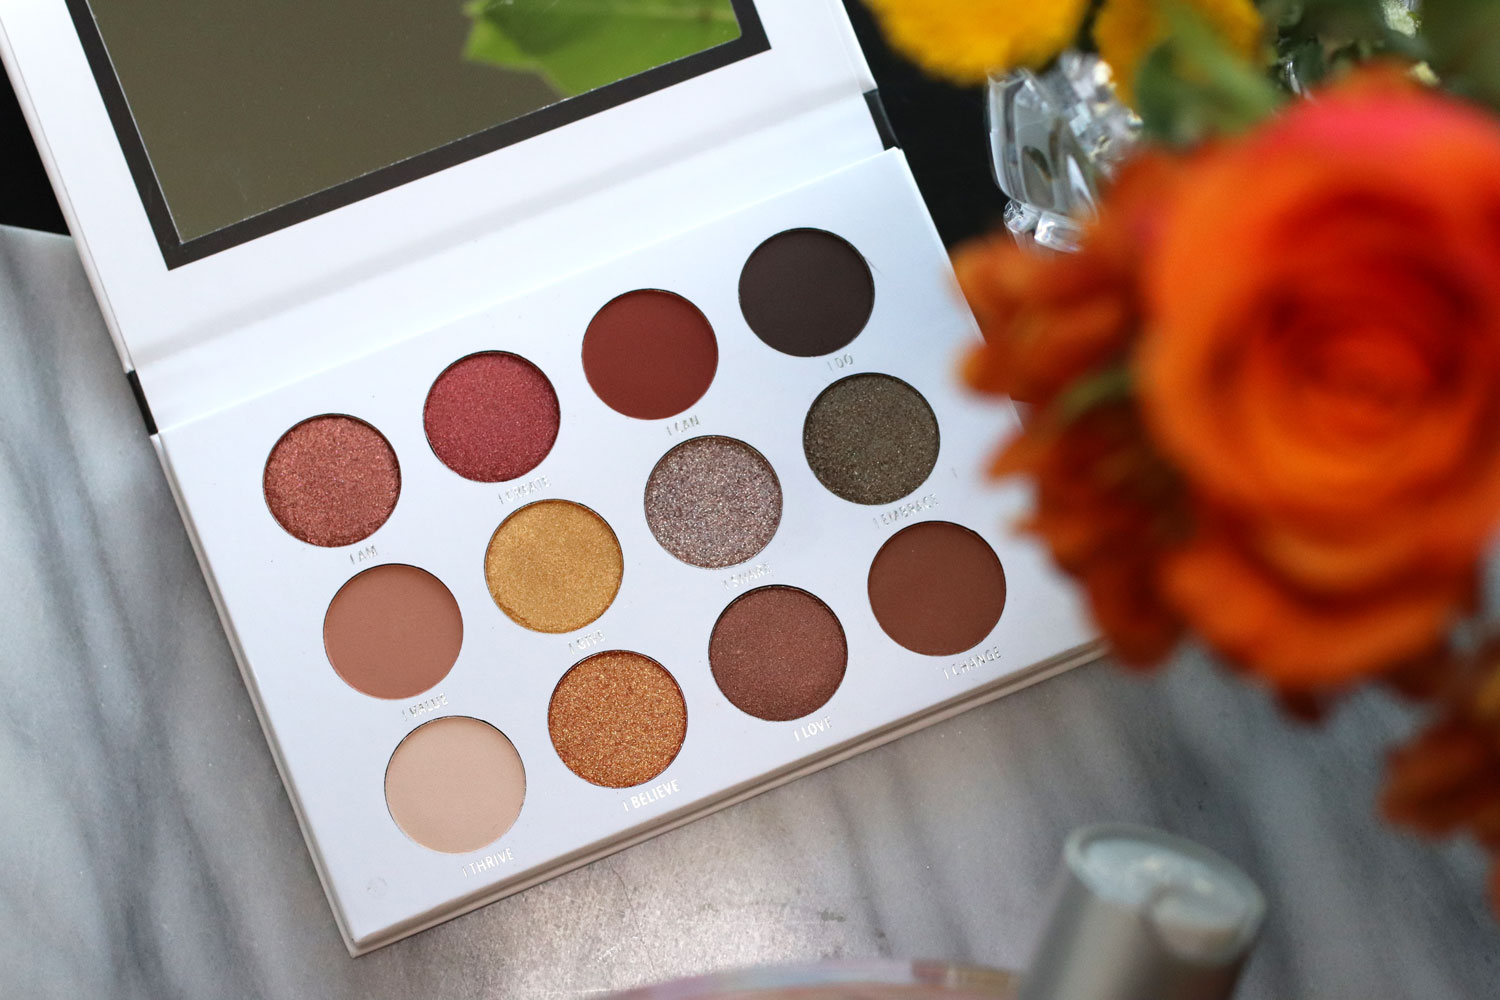 Giveaway - Vegan eyeshadow palette by Moira from The Vegan Warehouse